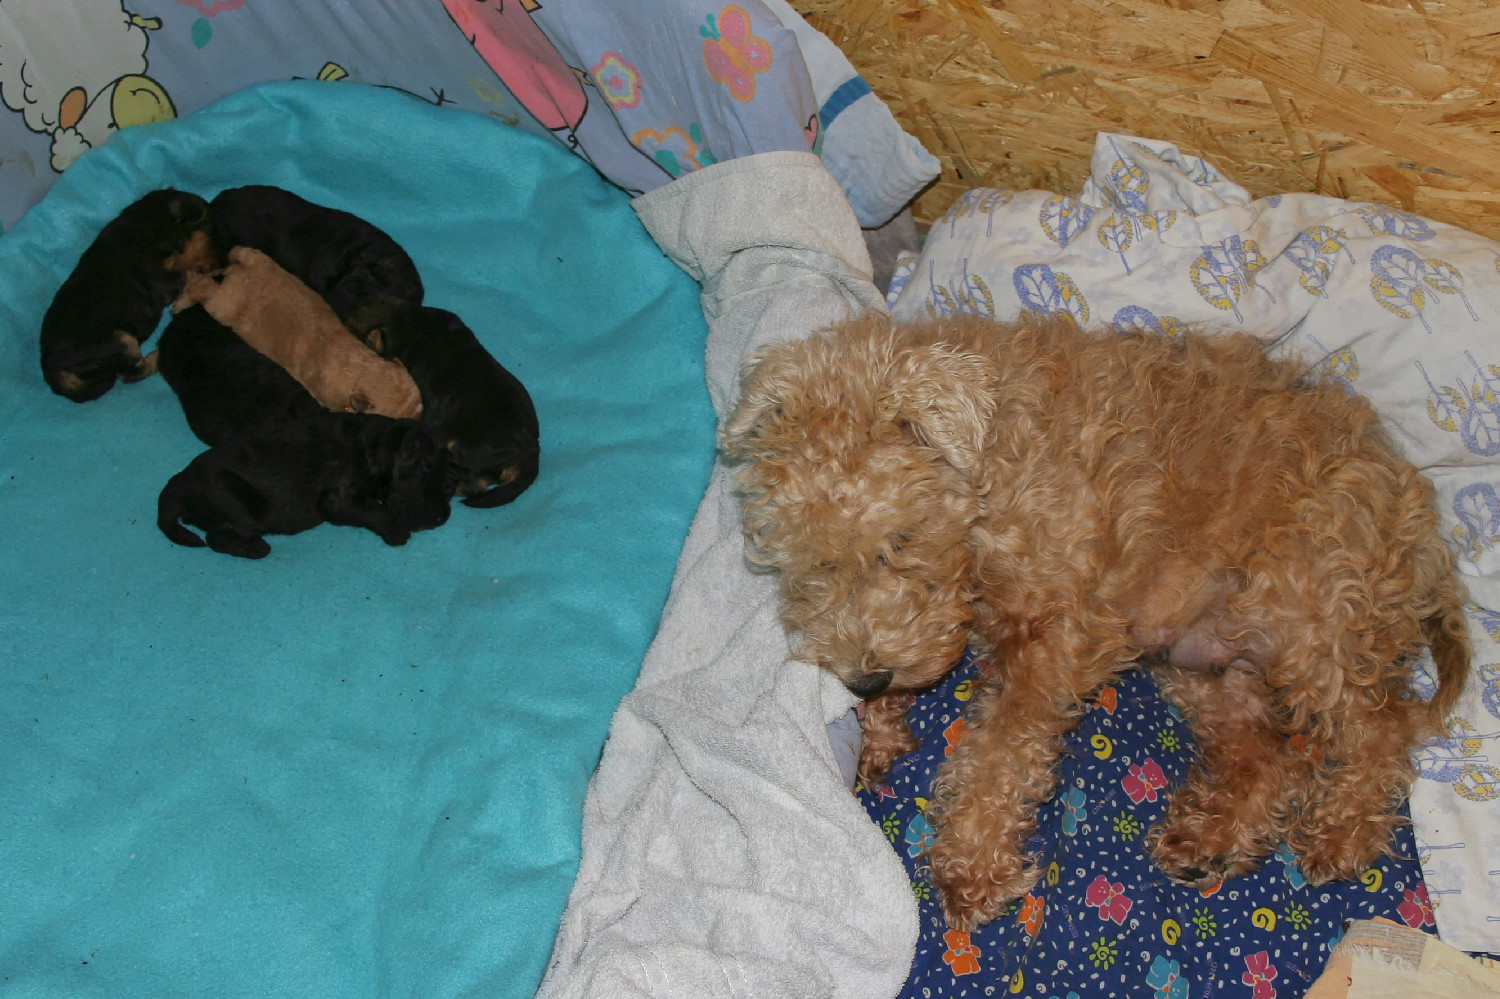 Brie and her Lakeland Terrier puppies